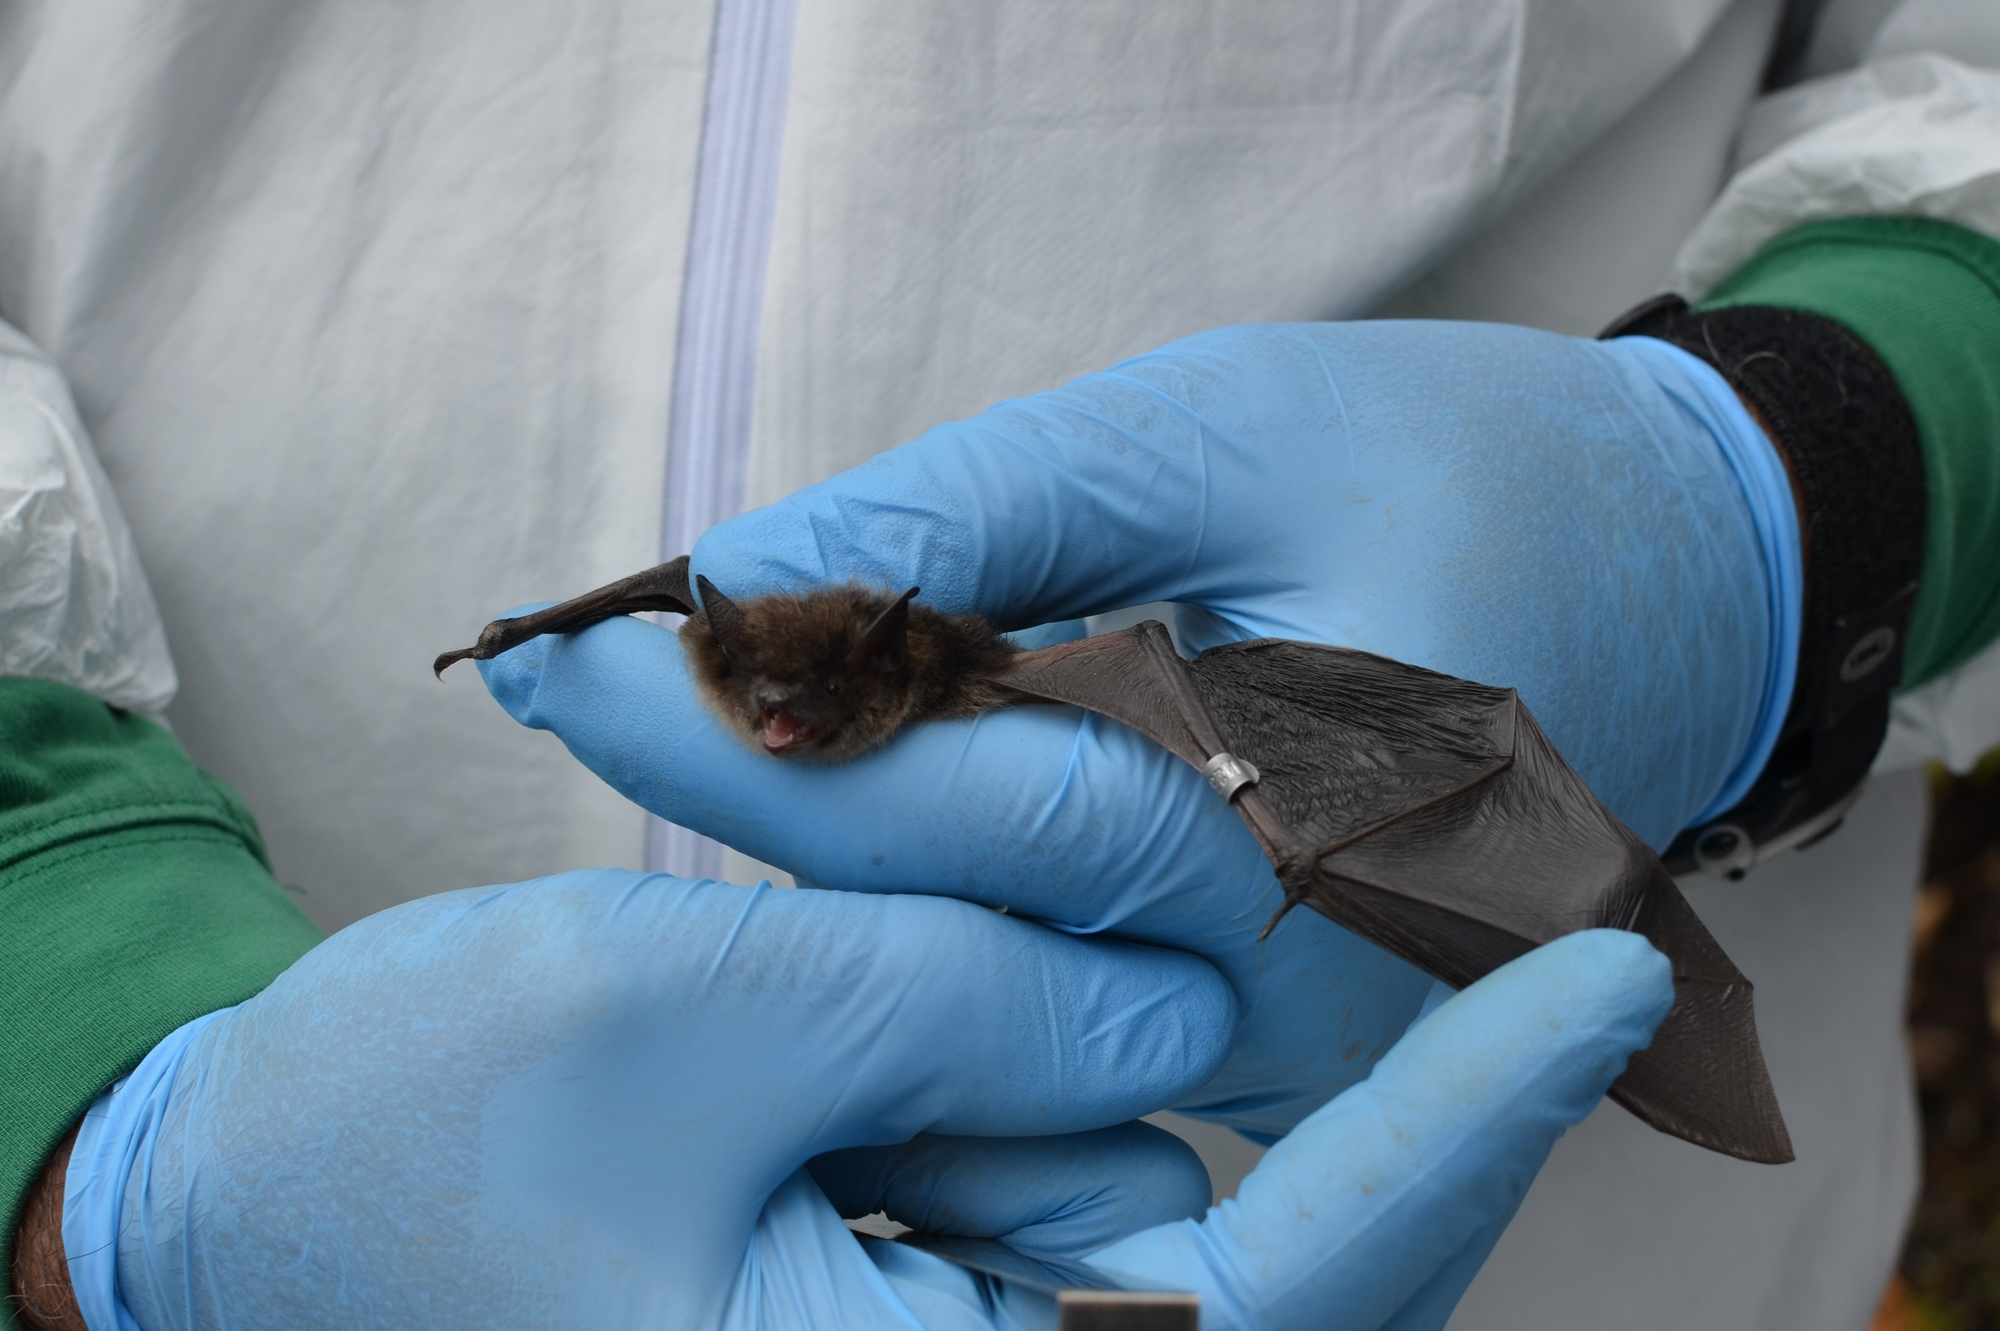 A little brown bat sports an identification band which will help researchers track its movements.